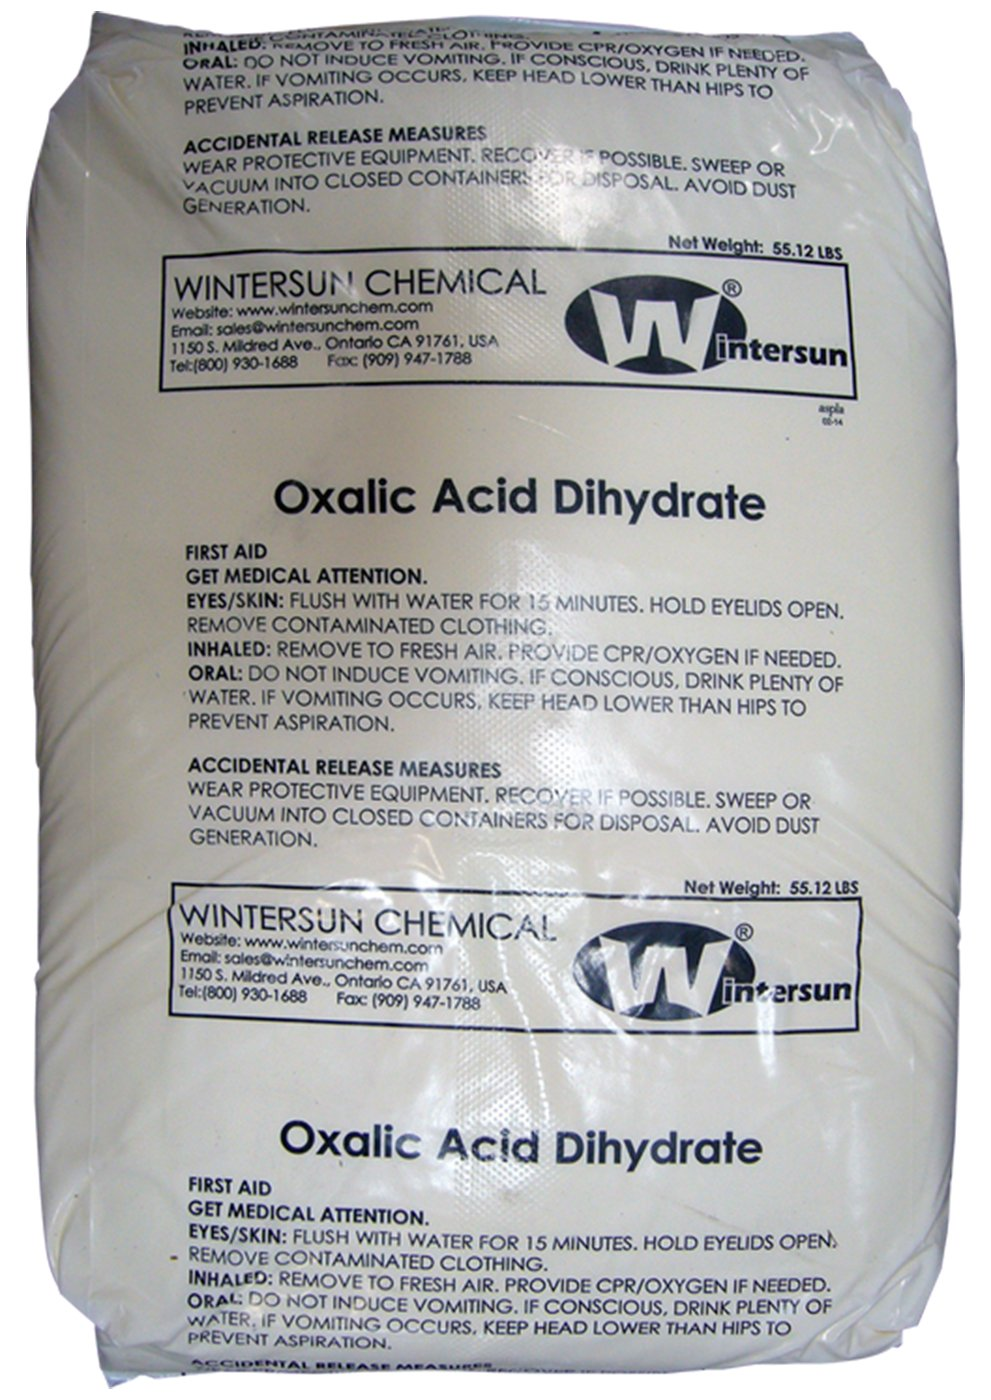 Oxalic Acid Dihydrate [C2H2O4.2H20] [CAS_6153-56-6] 99.6+% Fine White Crystal (55.12 Lbs Bag) by Wintersun Chemical